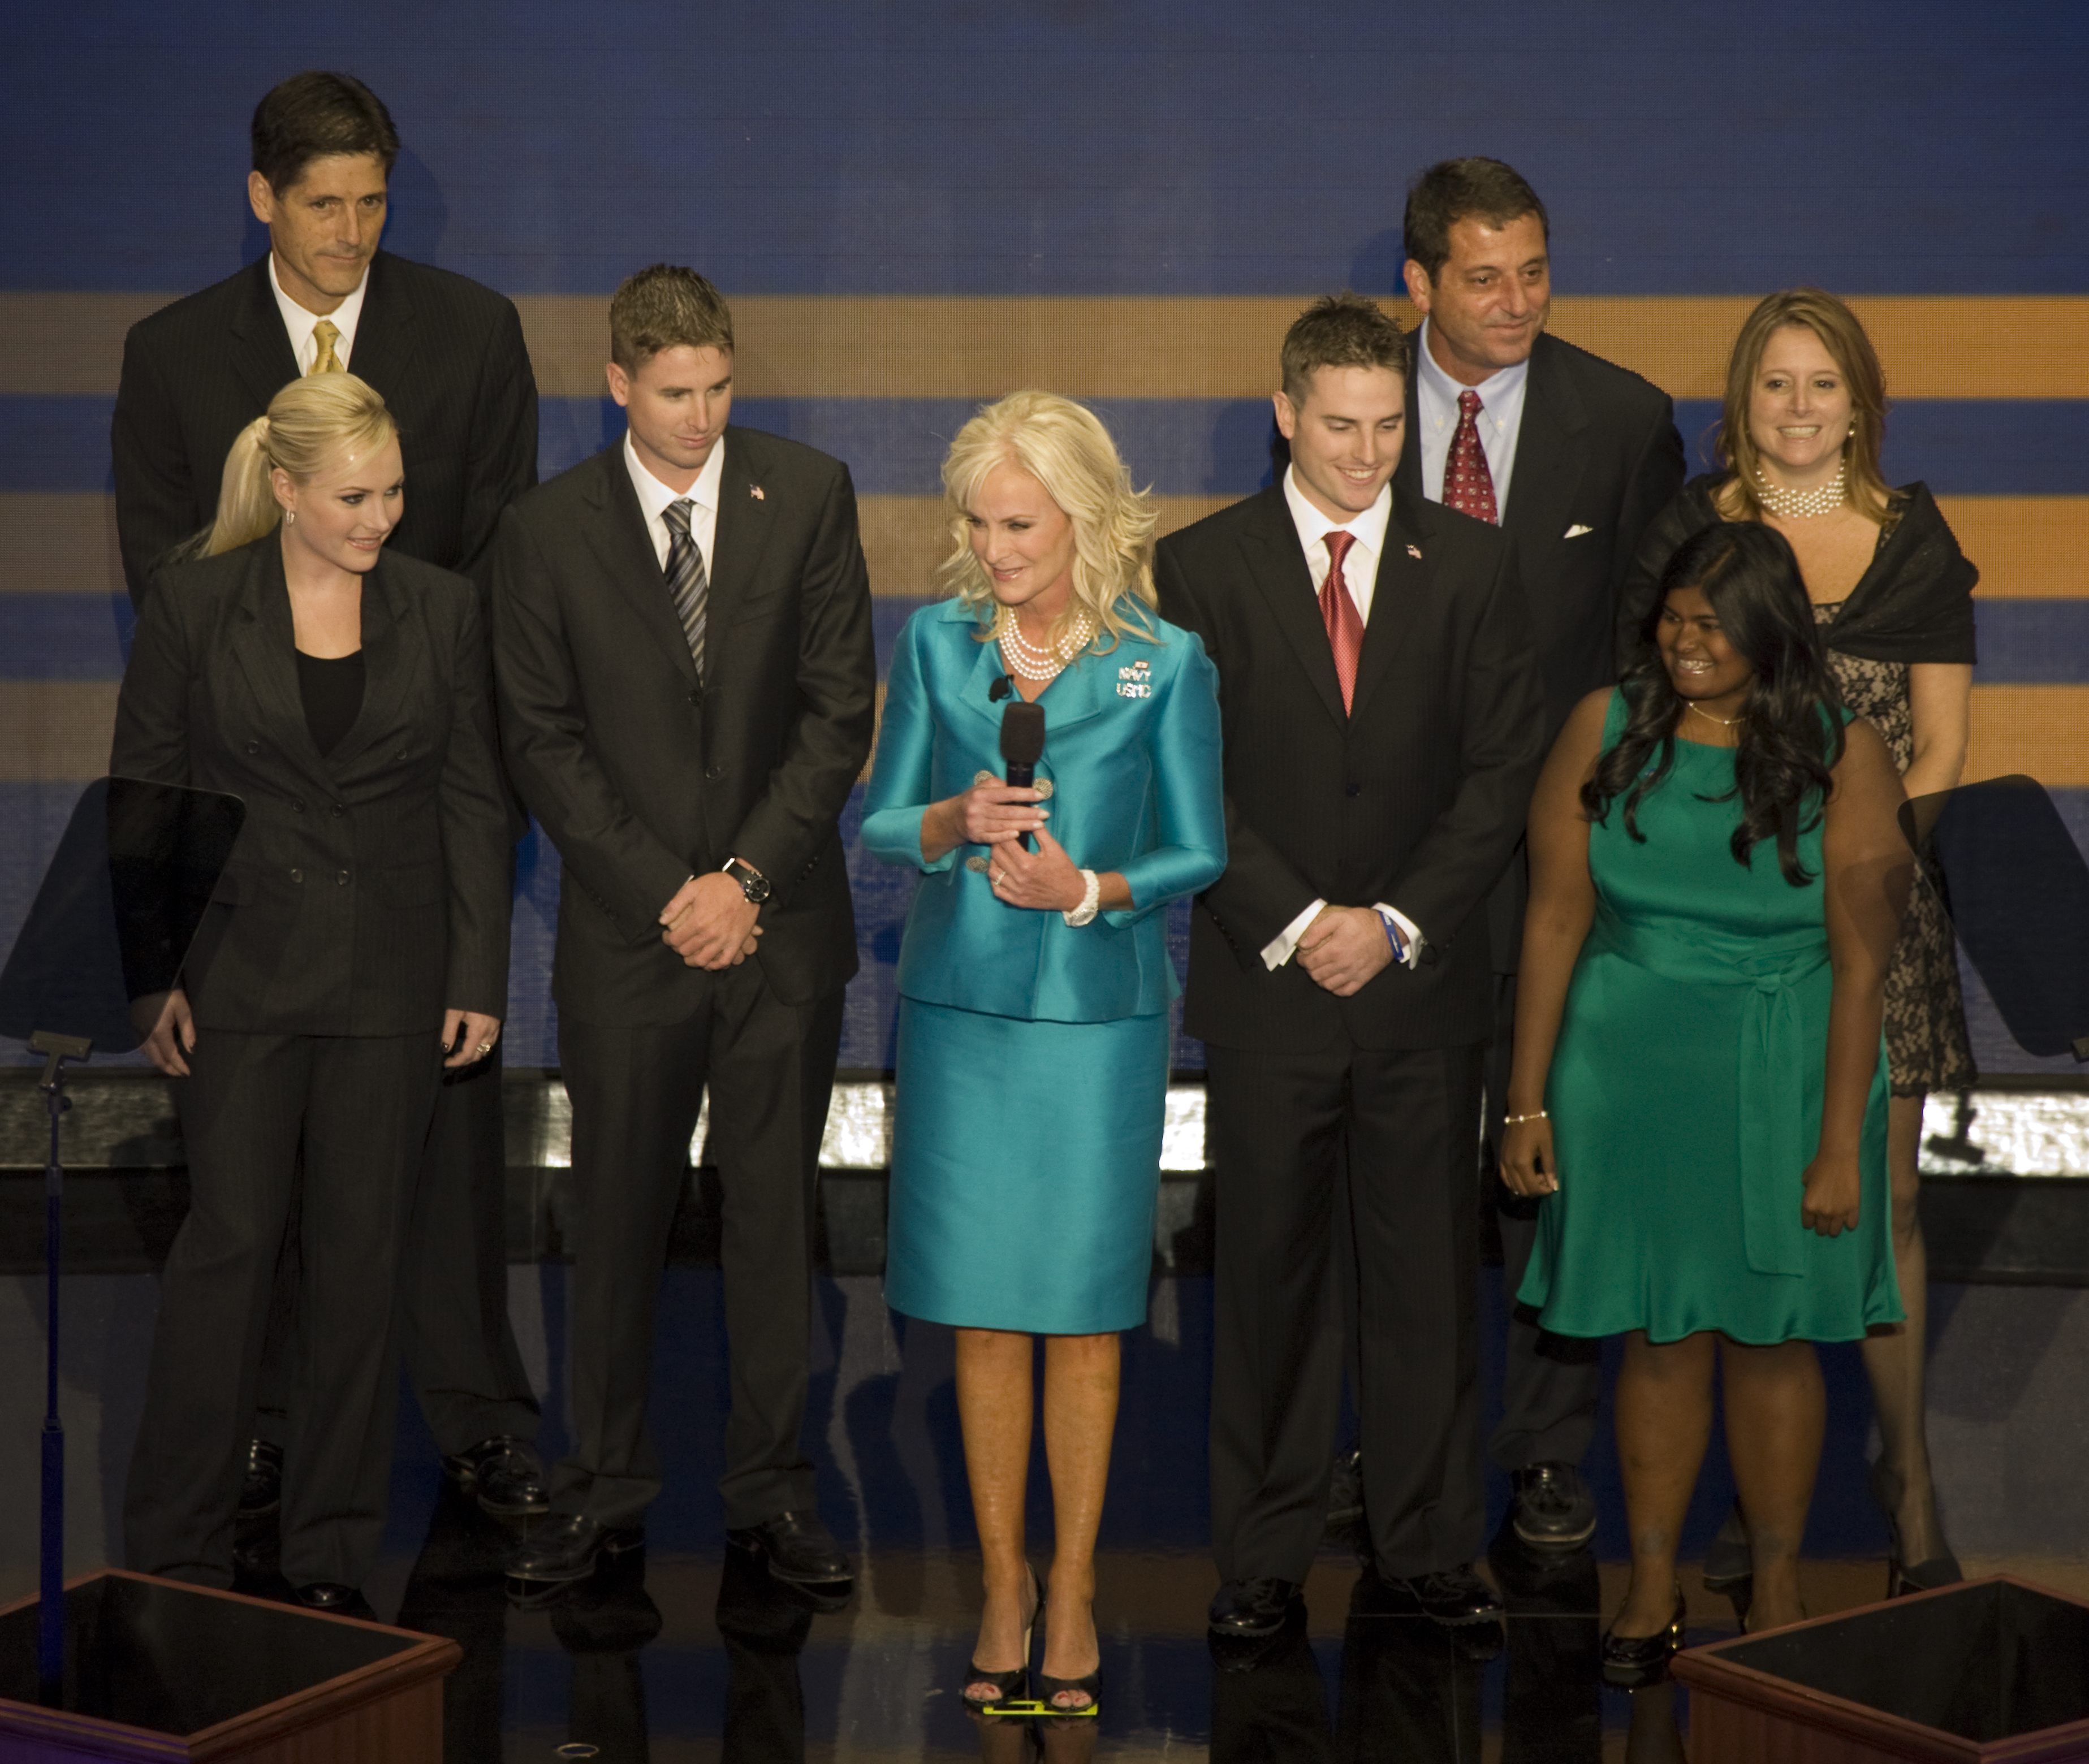 Meghan Mccain Weight Gain: File:Republican National Convention, September 1-4, 2008